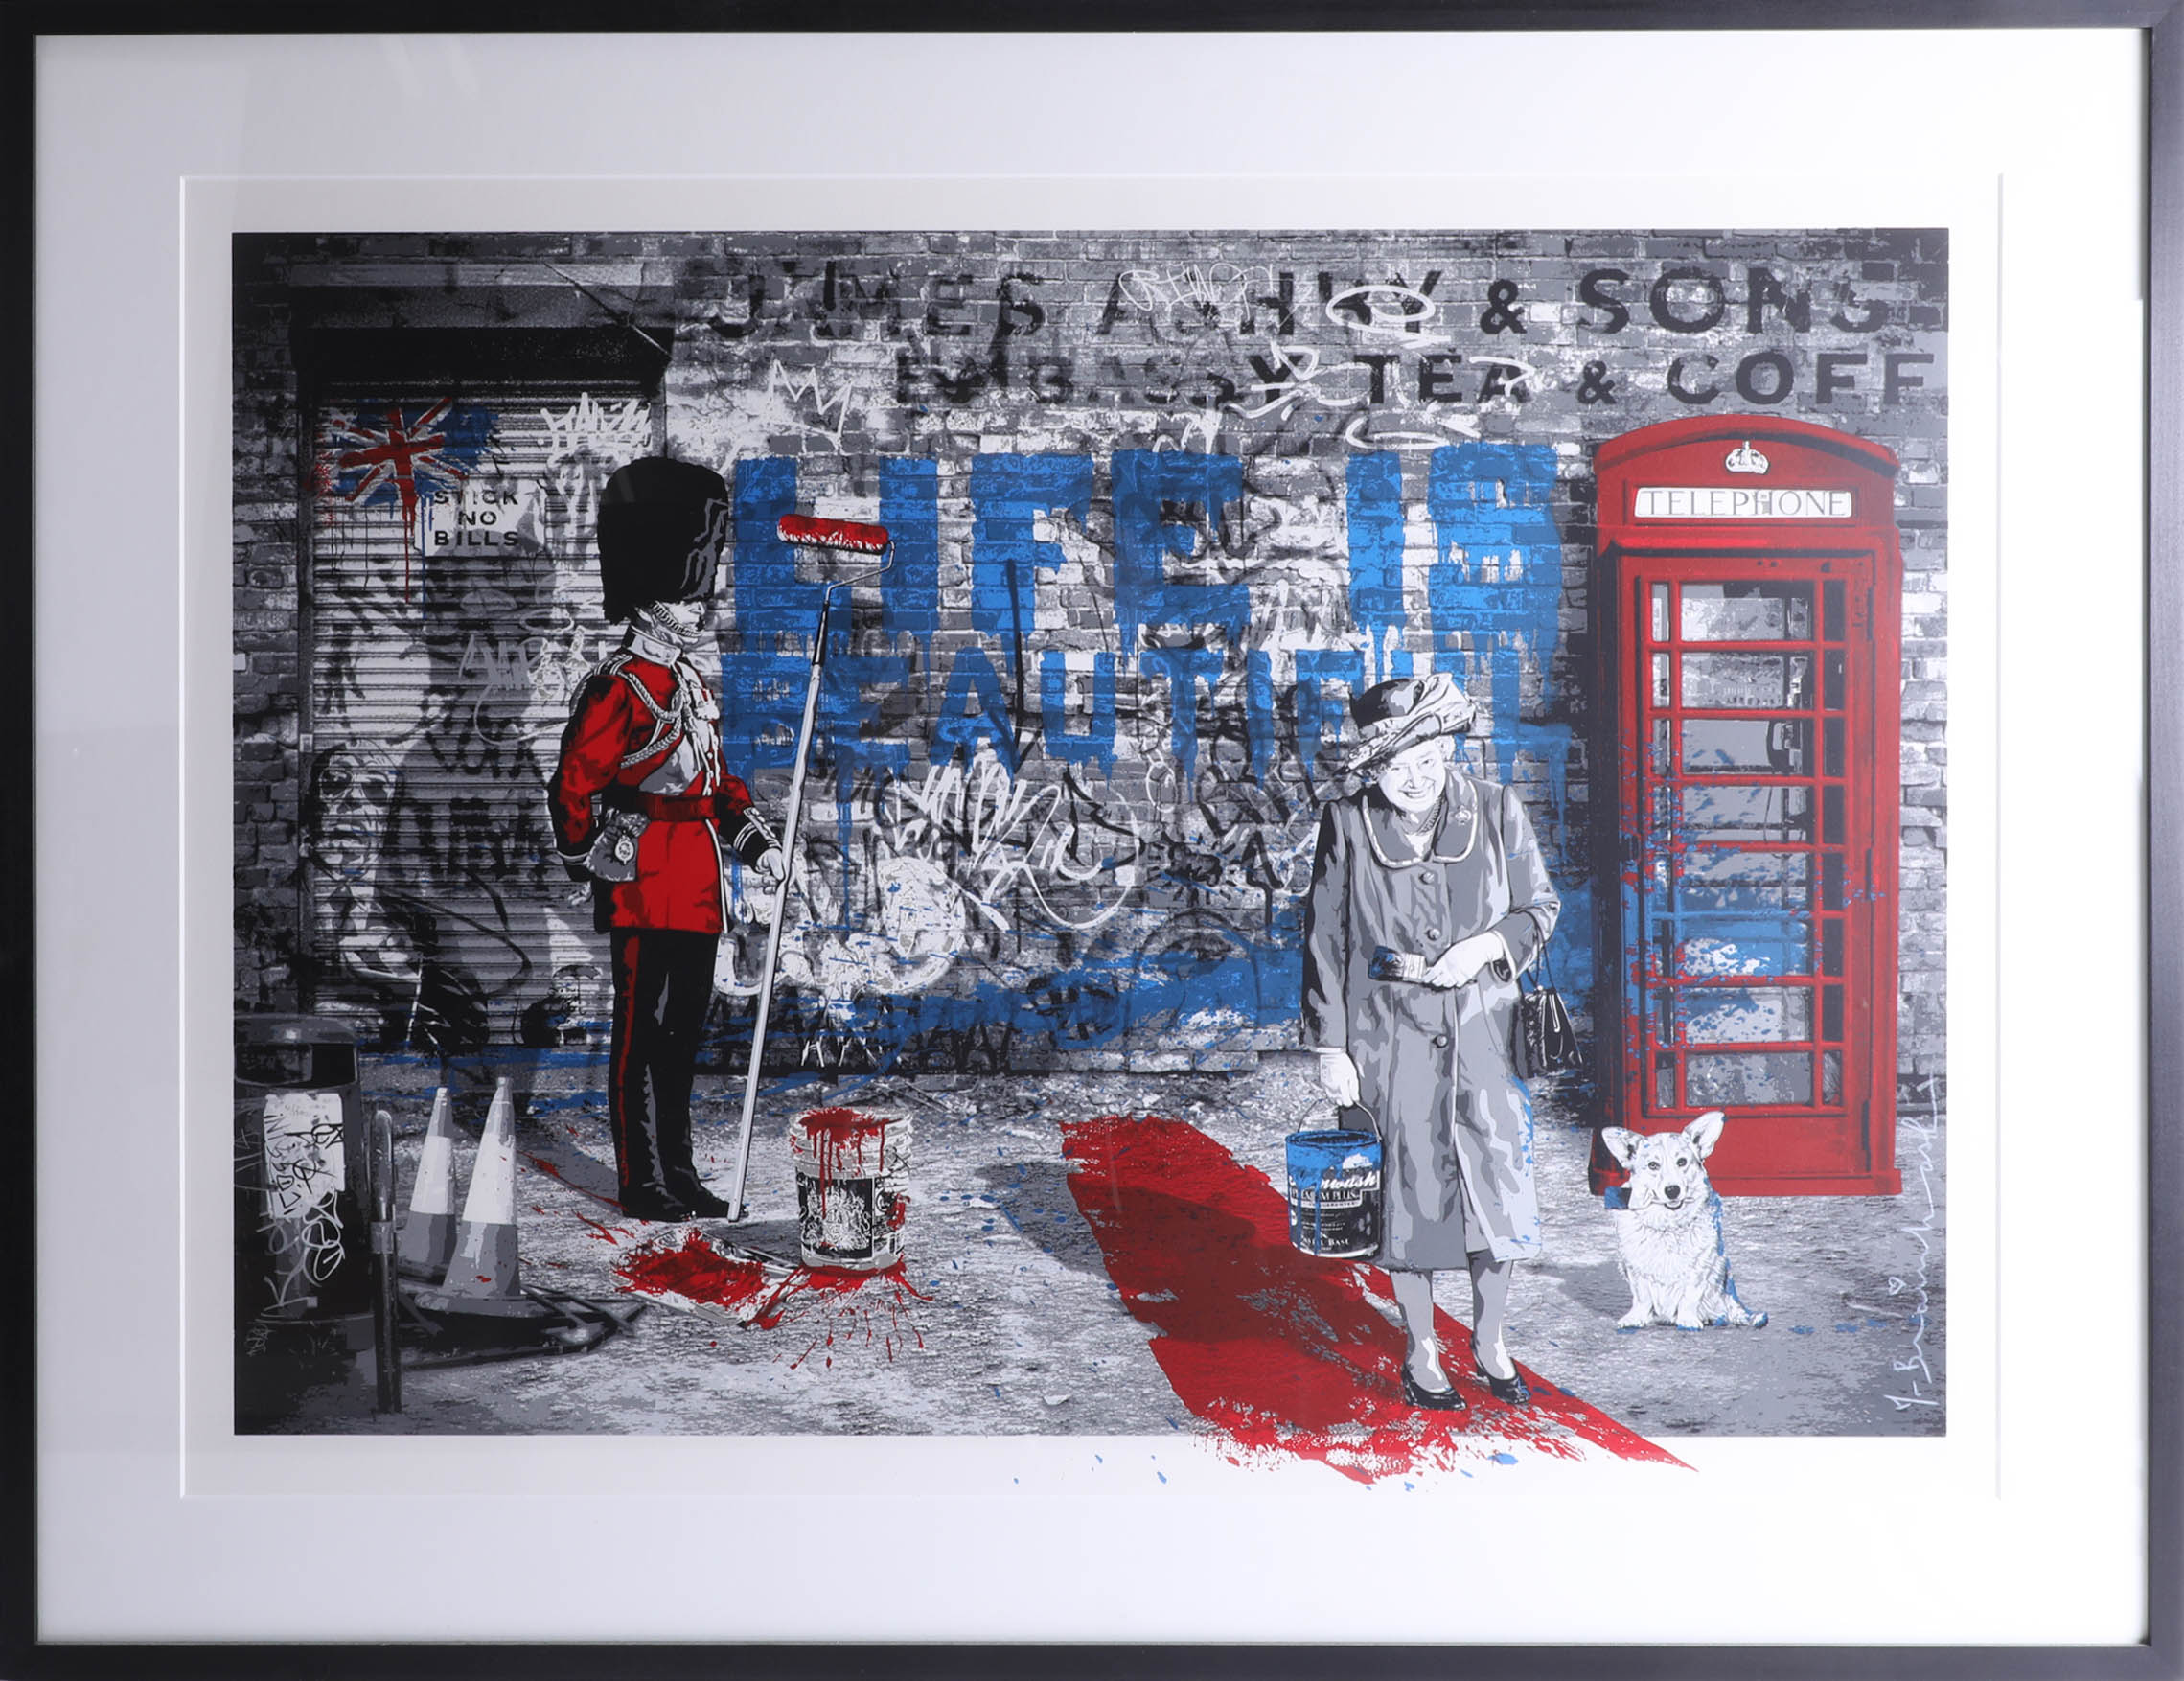 Lot 012 - Mr Brainwash, signed edition print, Jubilee, London 'Life is Beautiful', No. 51/150, 56cm x 76cm,